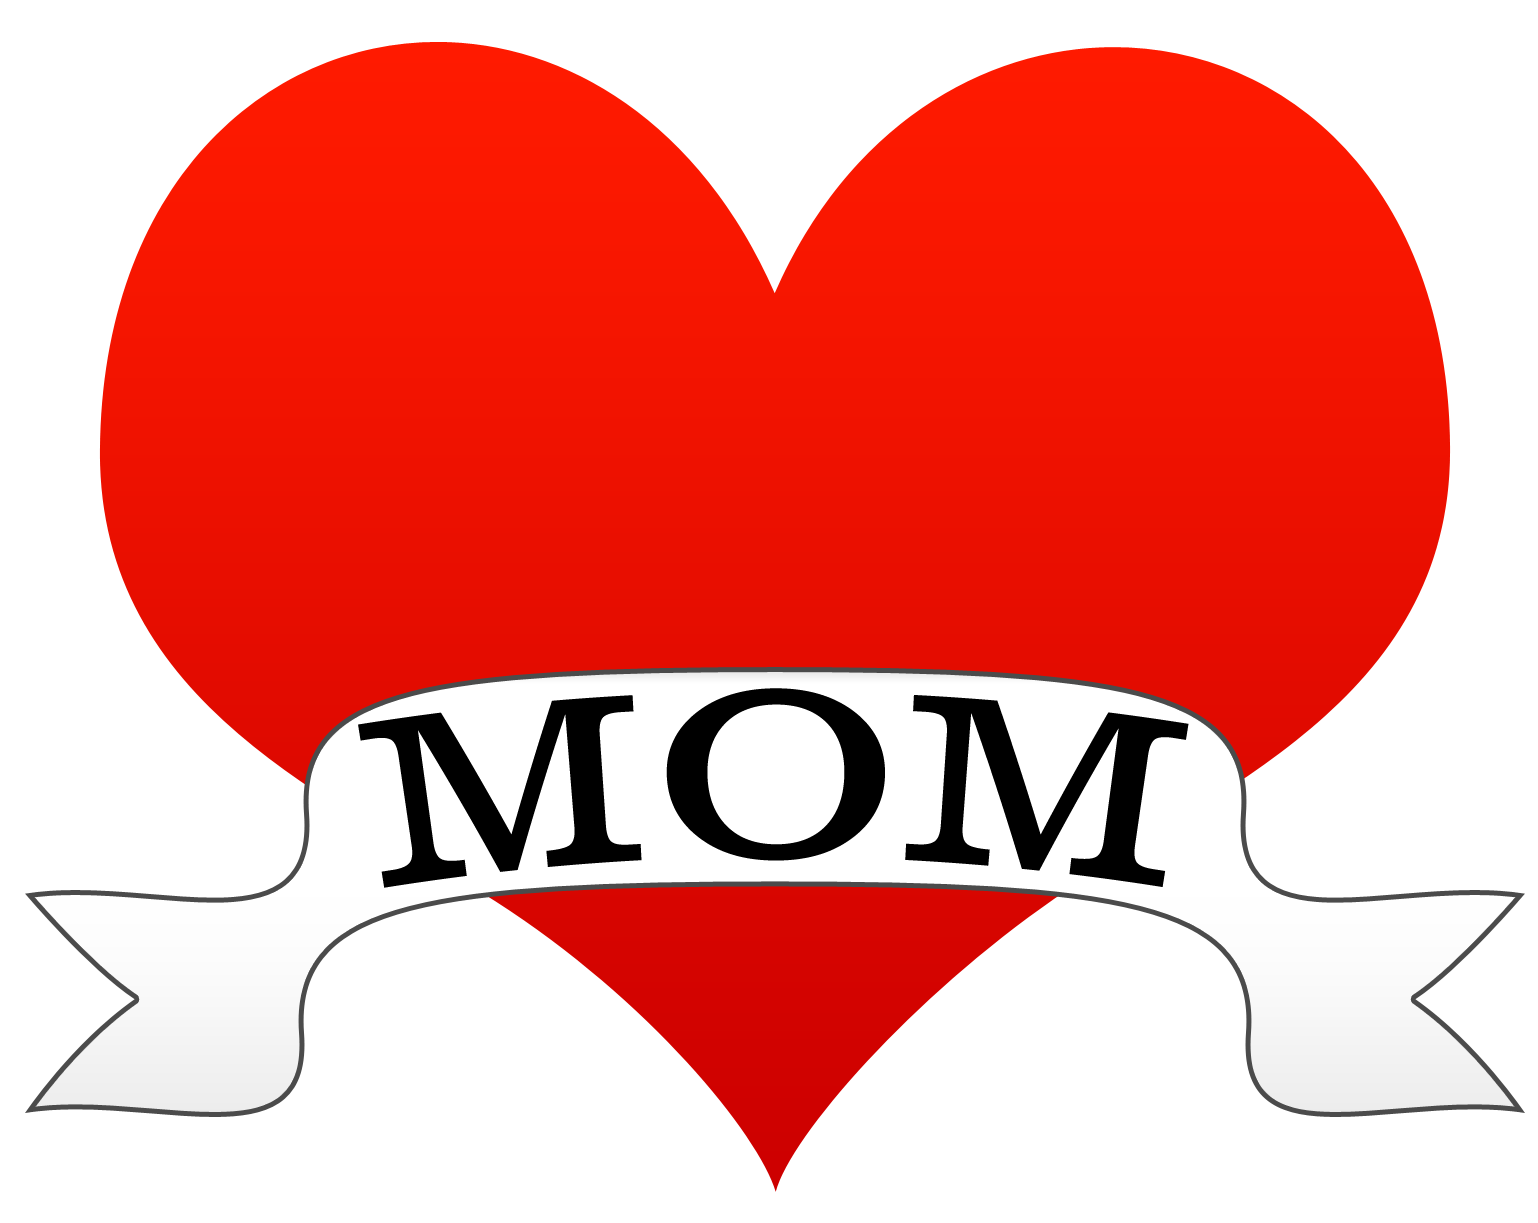 Clipart mom word. The mother panda free